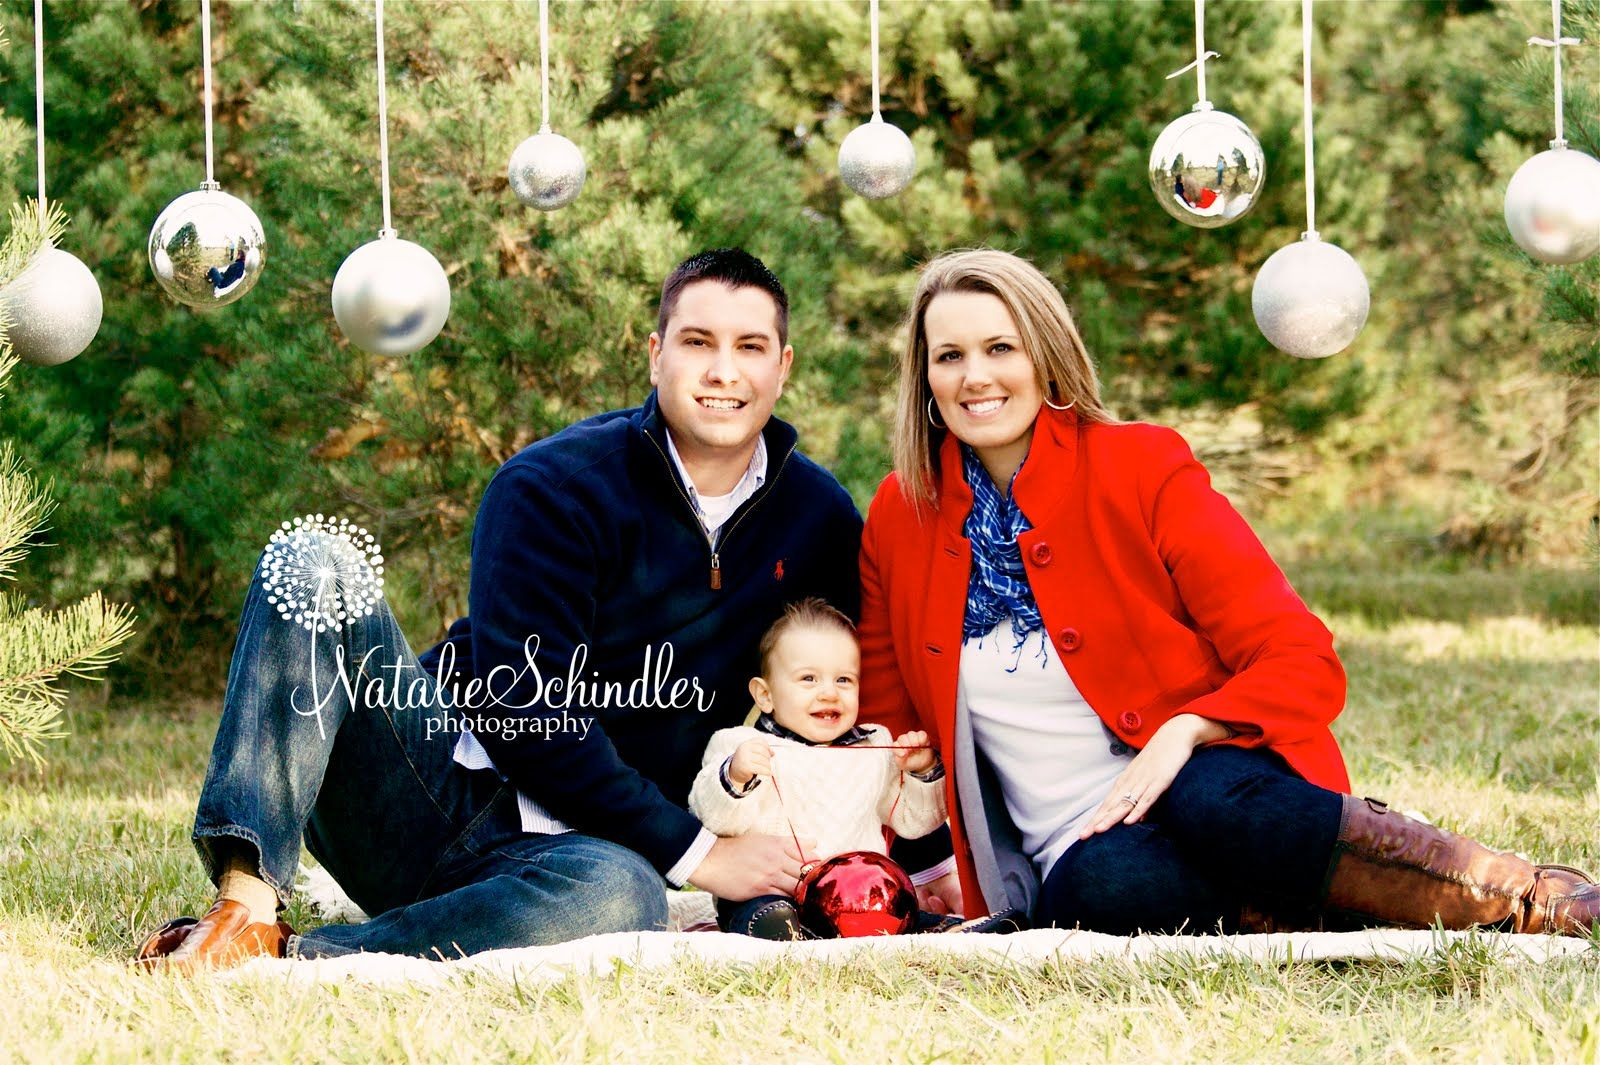 Natalie Schindler Photography: Outdoor Christmas Mini Sessions ...